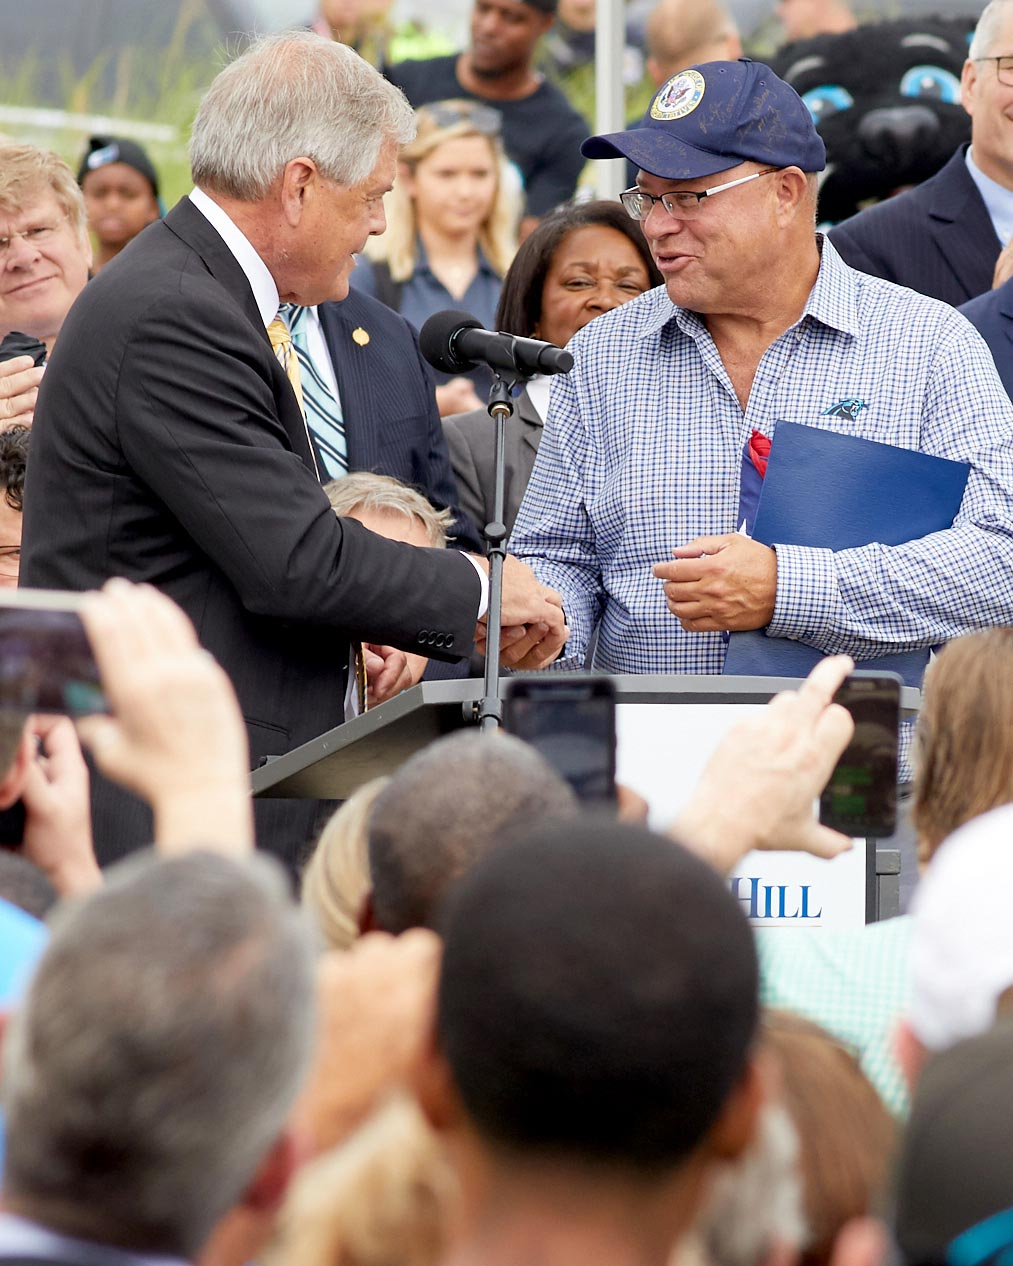 Politician shaking hands with a business owner at an outdoor event for the Carolina Panthers in Rock Hill, SC